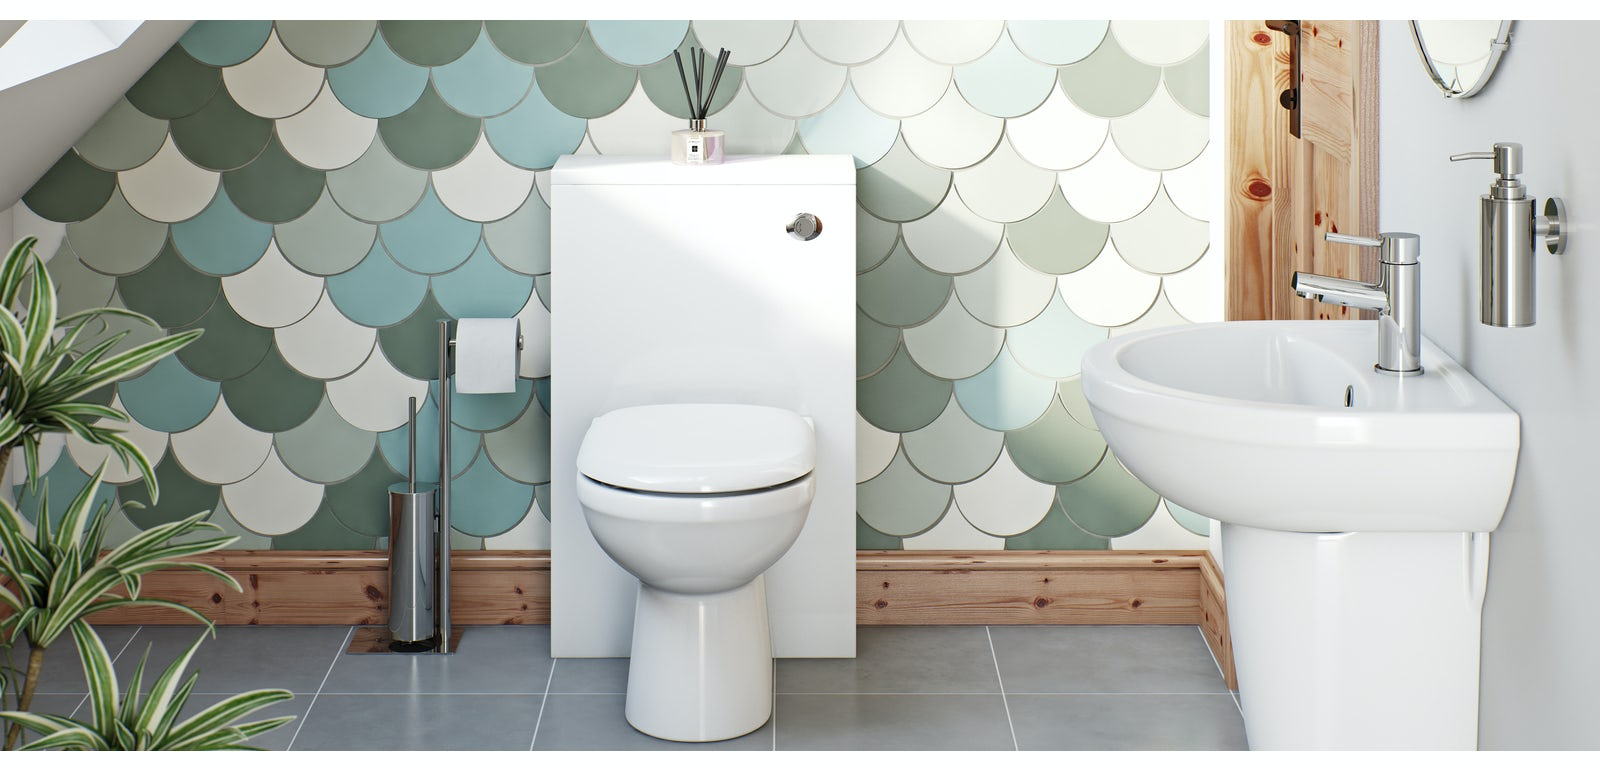 Excellent Replacing Bathroom Floor Waste Huge 48 White Bathroom Vanity Cabinet Square Bathroom Half Wall Tile Ideas Bathrooms And More Reviews Youthful Delta Bath Faucets Chrome ColouredYelp Santa Cruz Kitchen And Bath Average Price Of Having A Bathroom Fitted   Rukinet